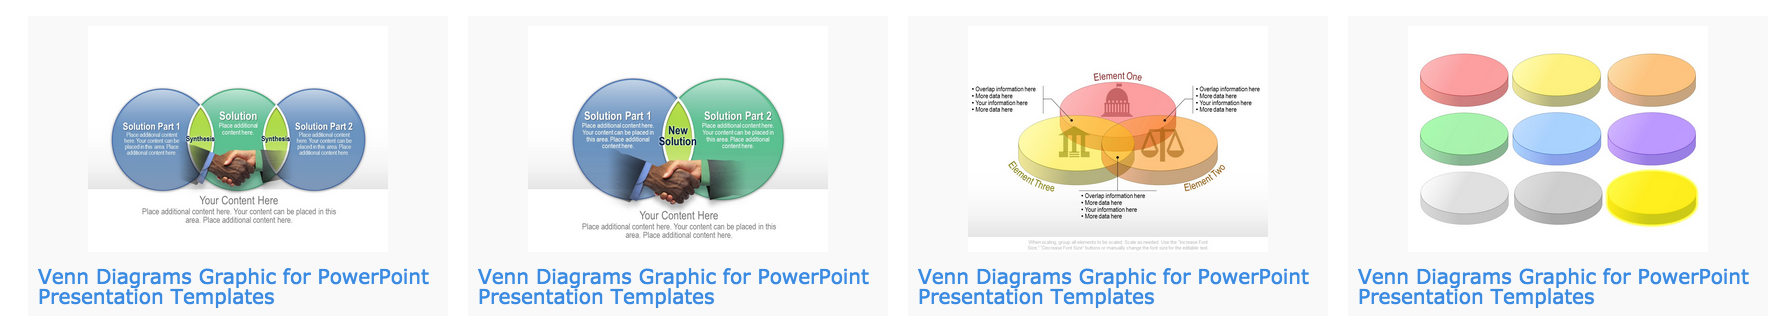 Download venn diagram templates for powerpoint view all venn diagram templates toneelgroepblik Gallery